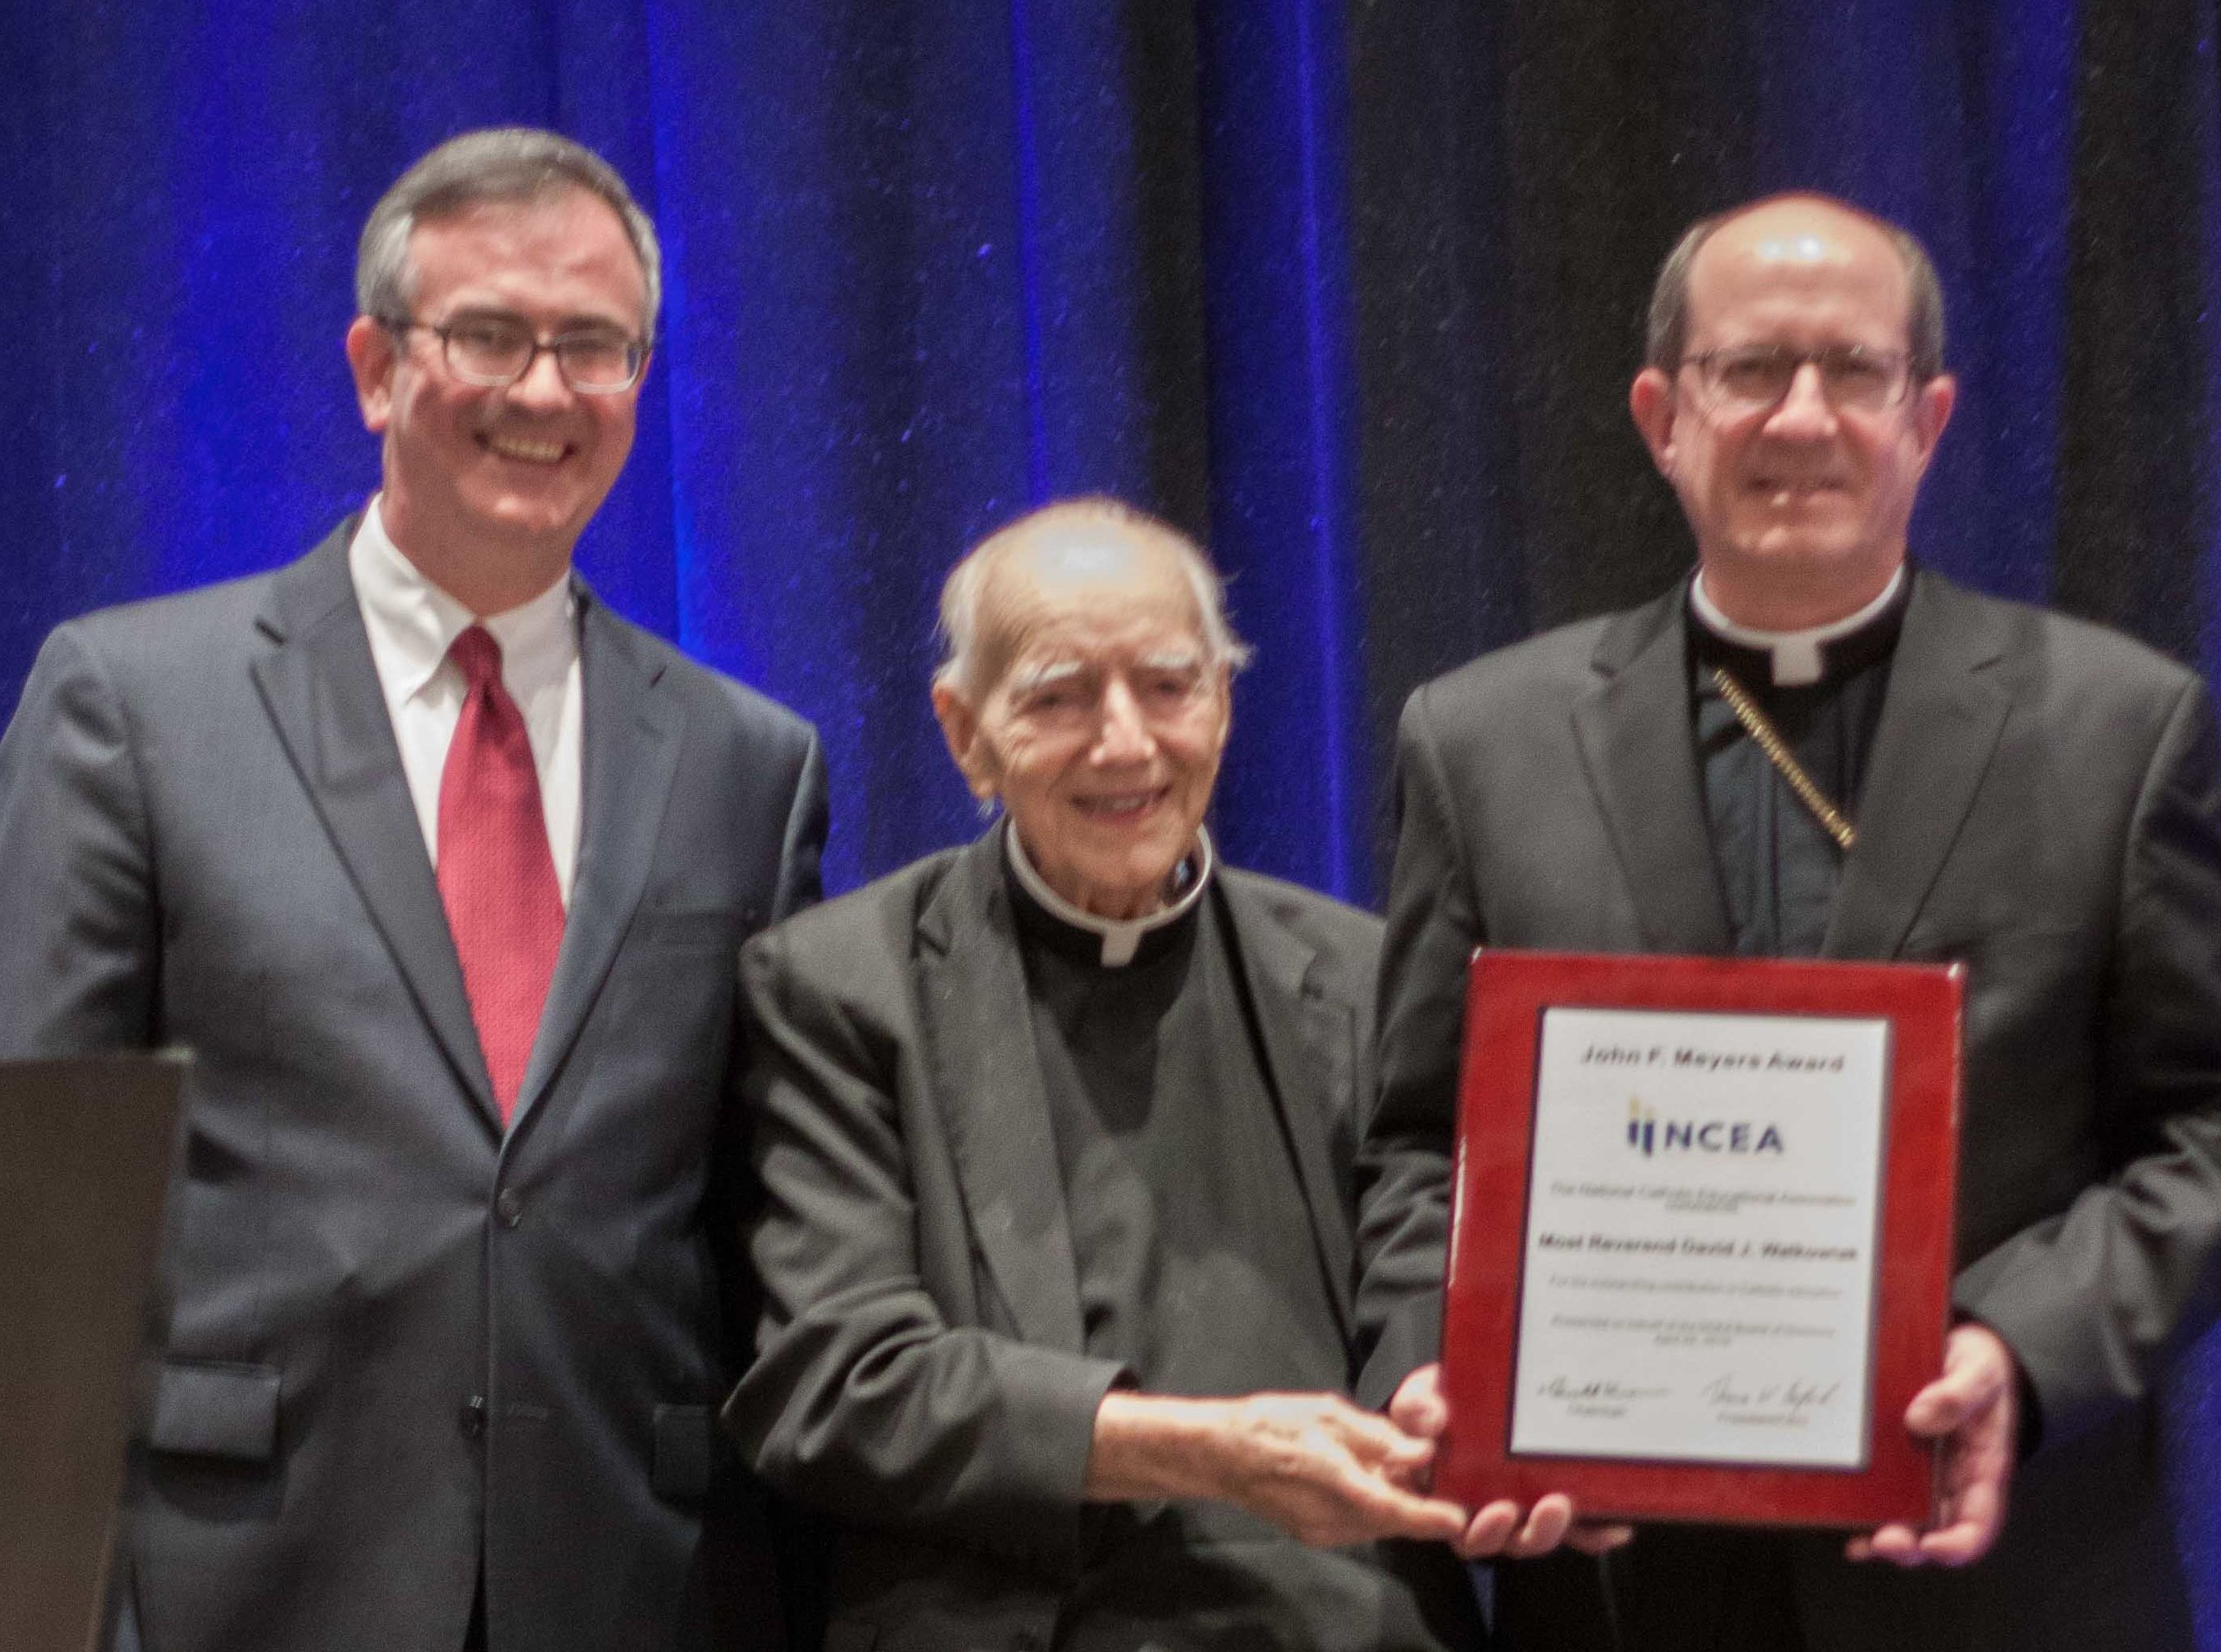 Bishop Walkowiak receives NCEA Award, April 2019